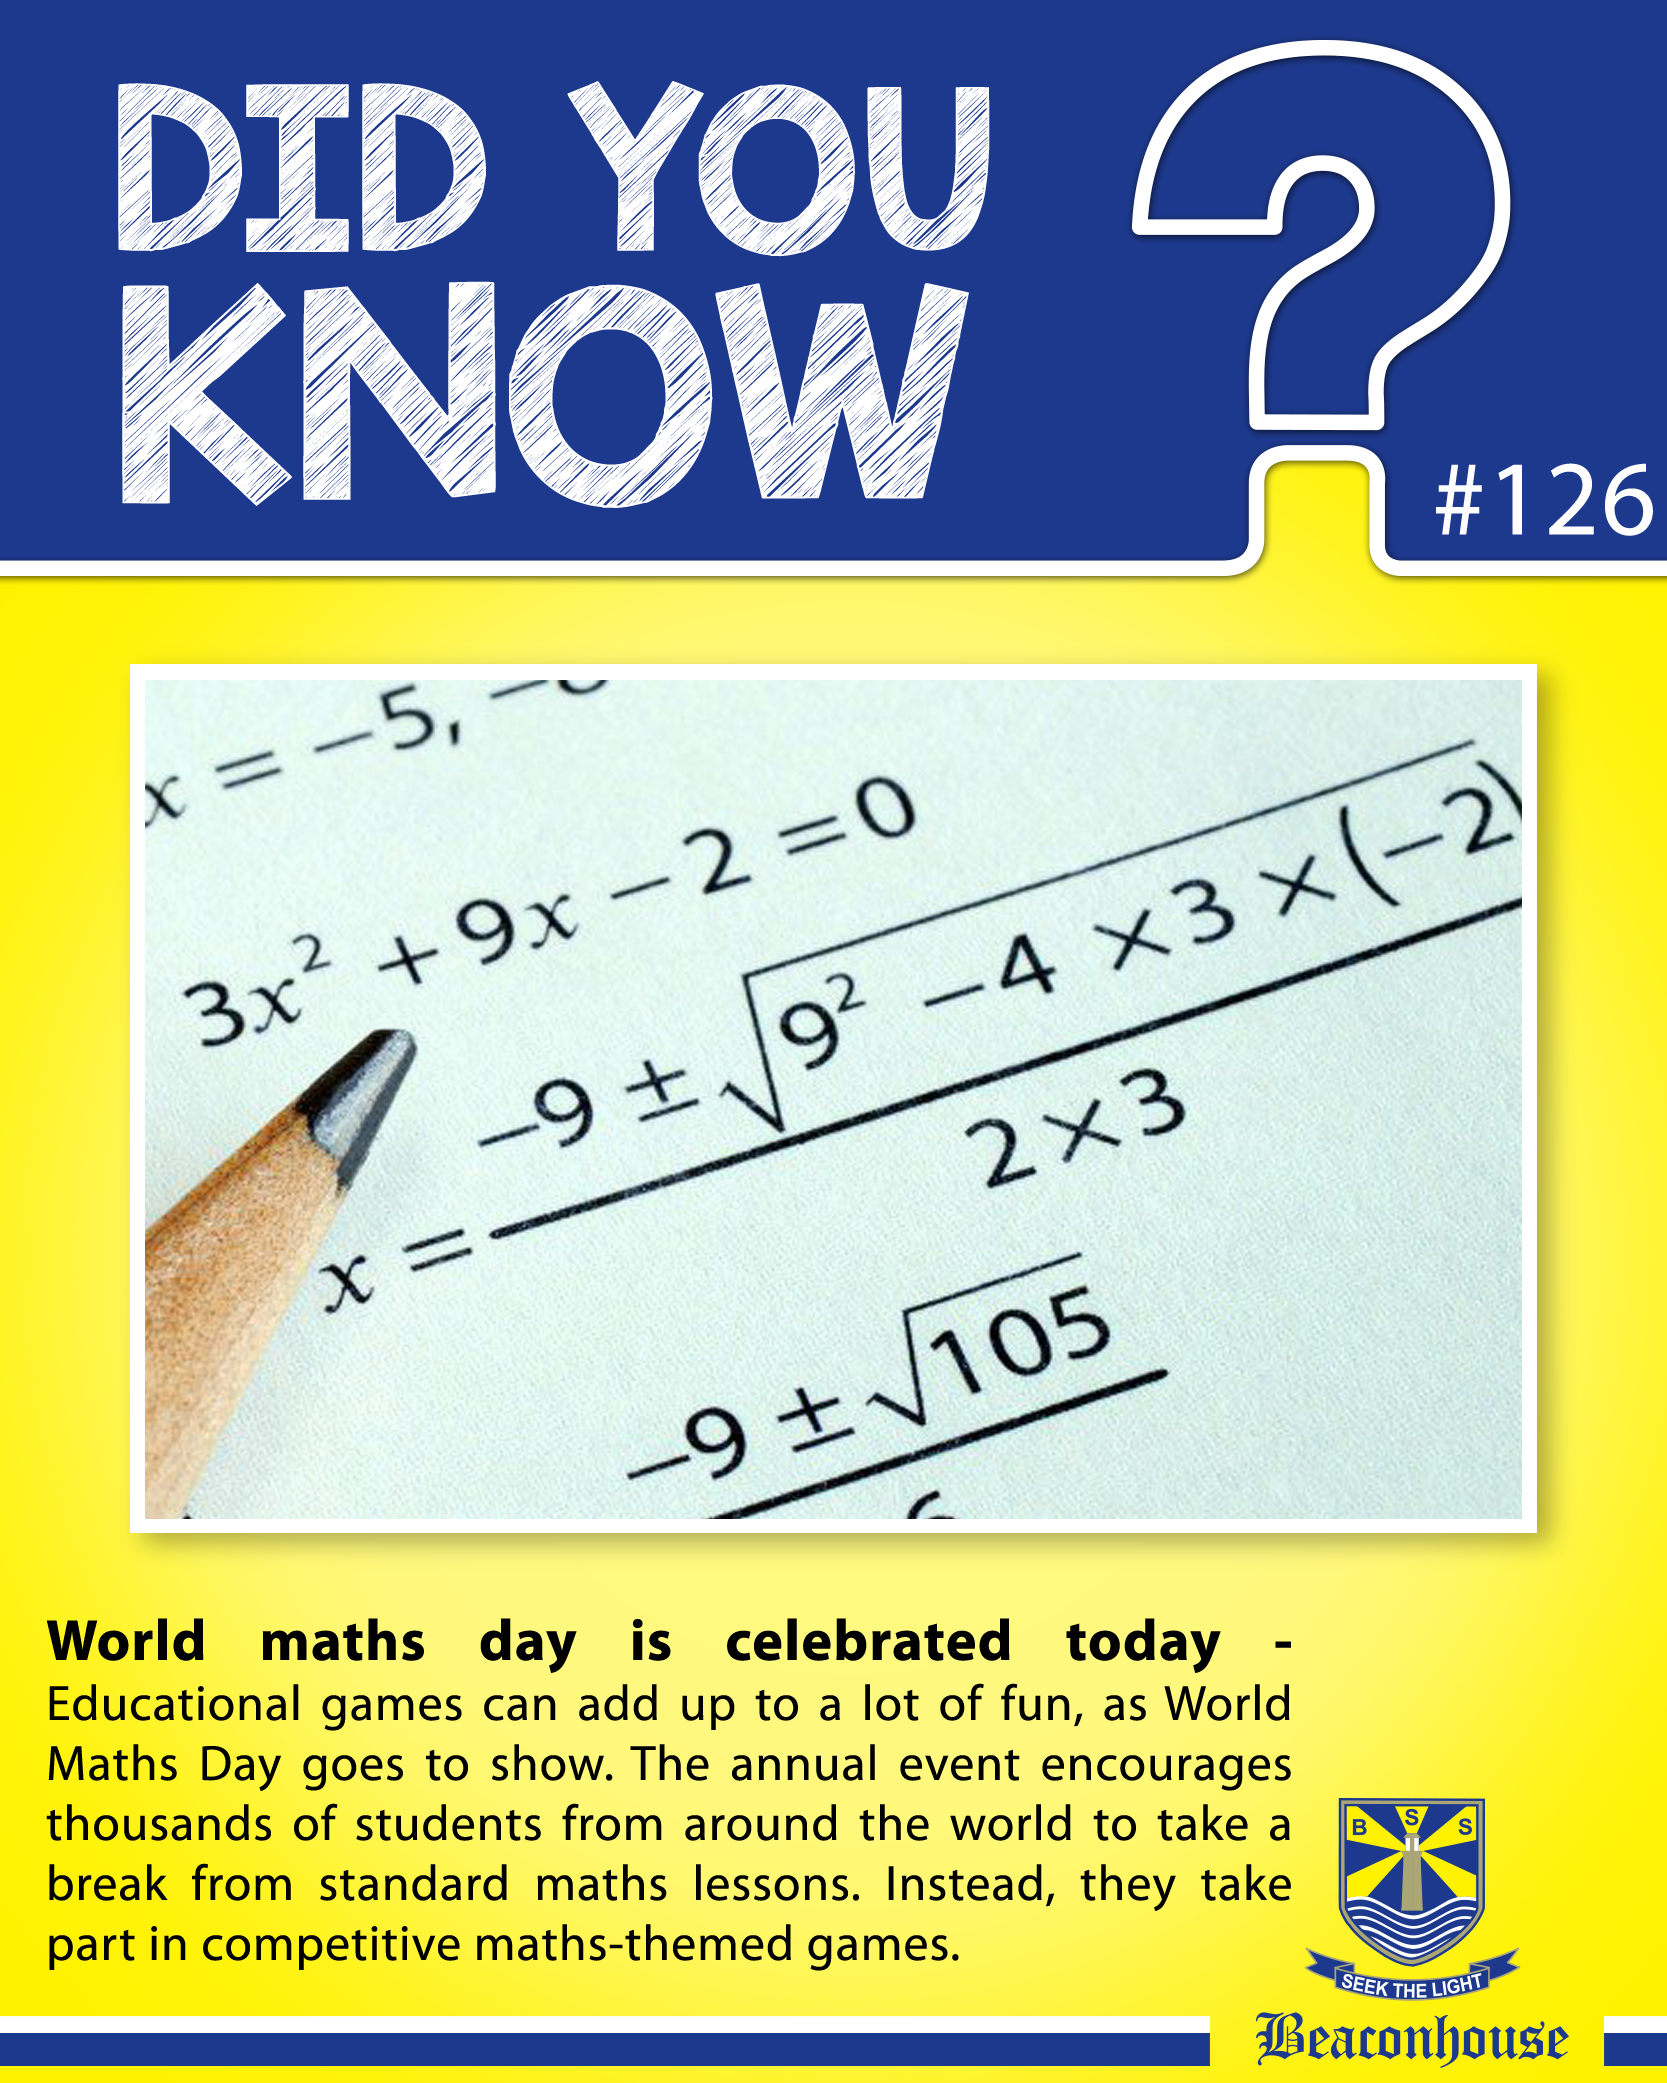 DidYouKnow World maths day is celebrated today